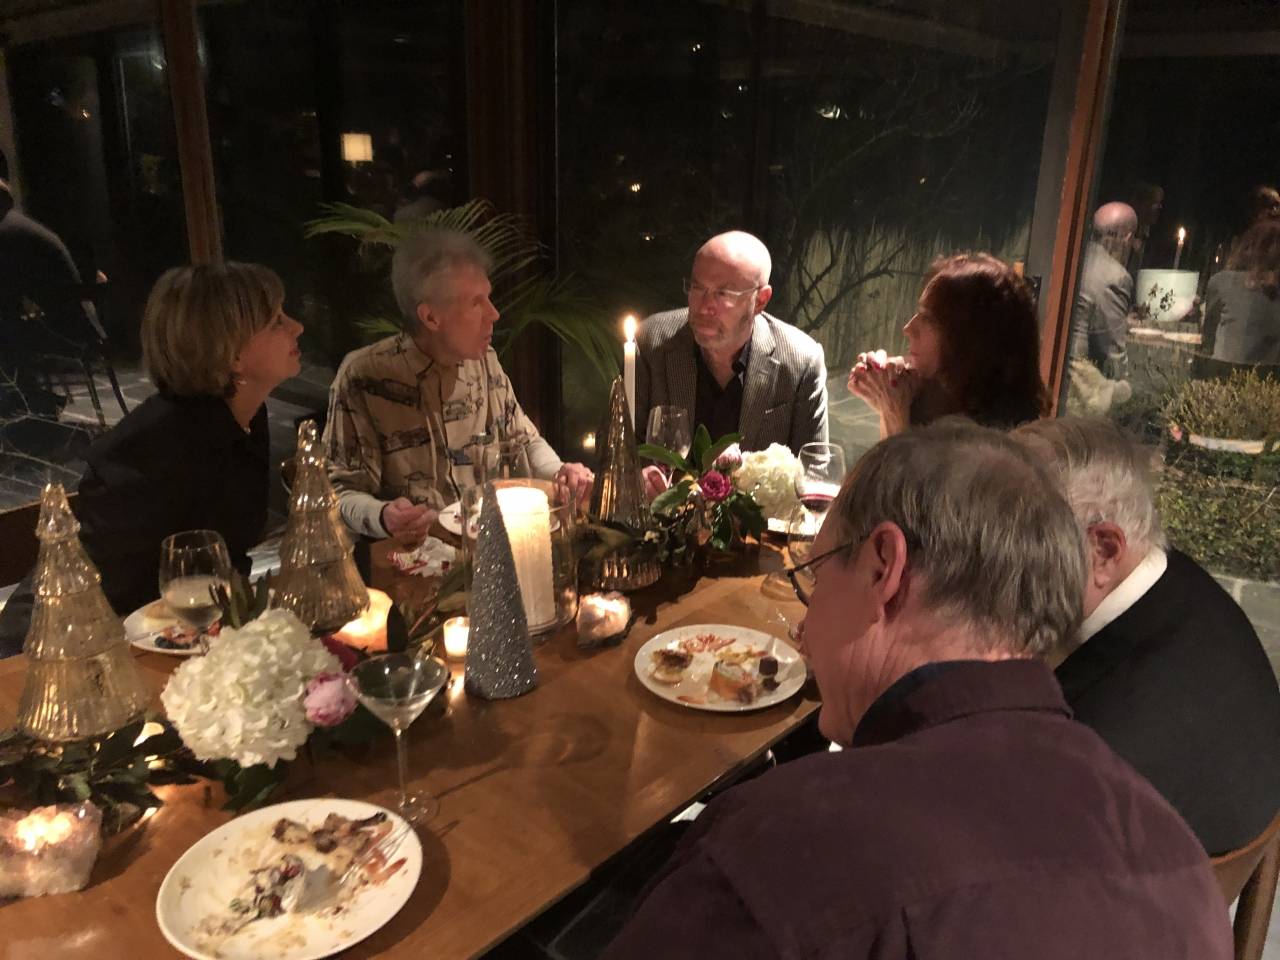 CBB members had a great time at the beautiful house of our hosts Kate & Mike. The house was designed by Hausner & Macsai.